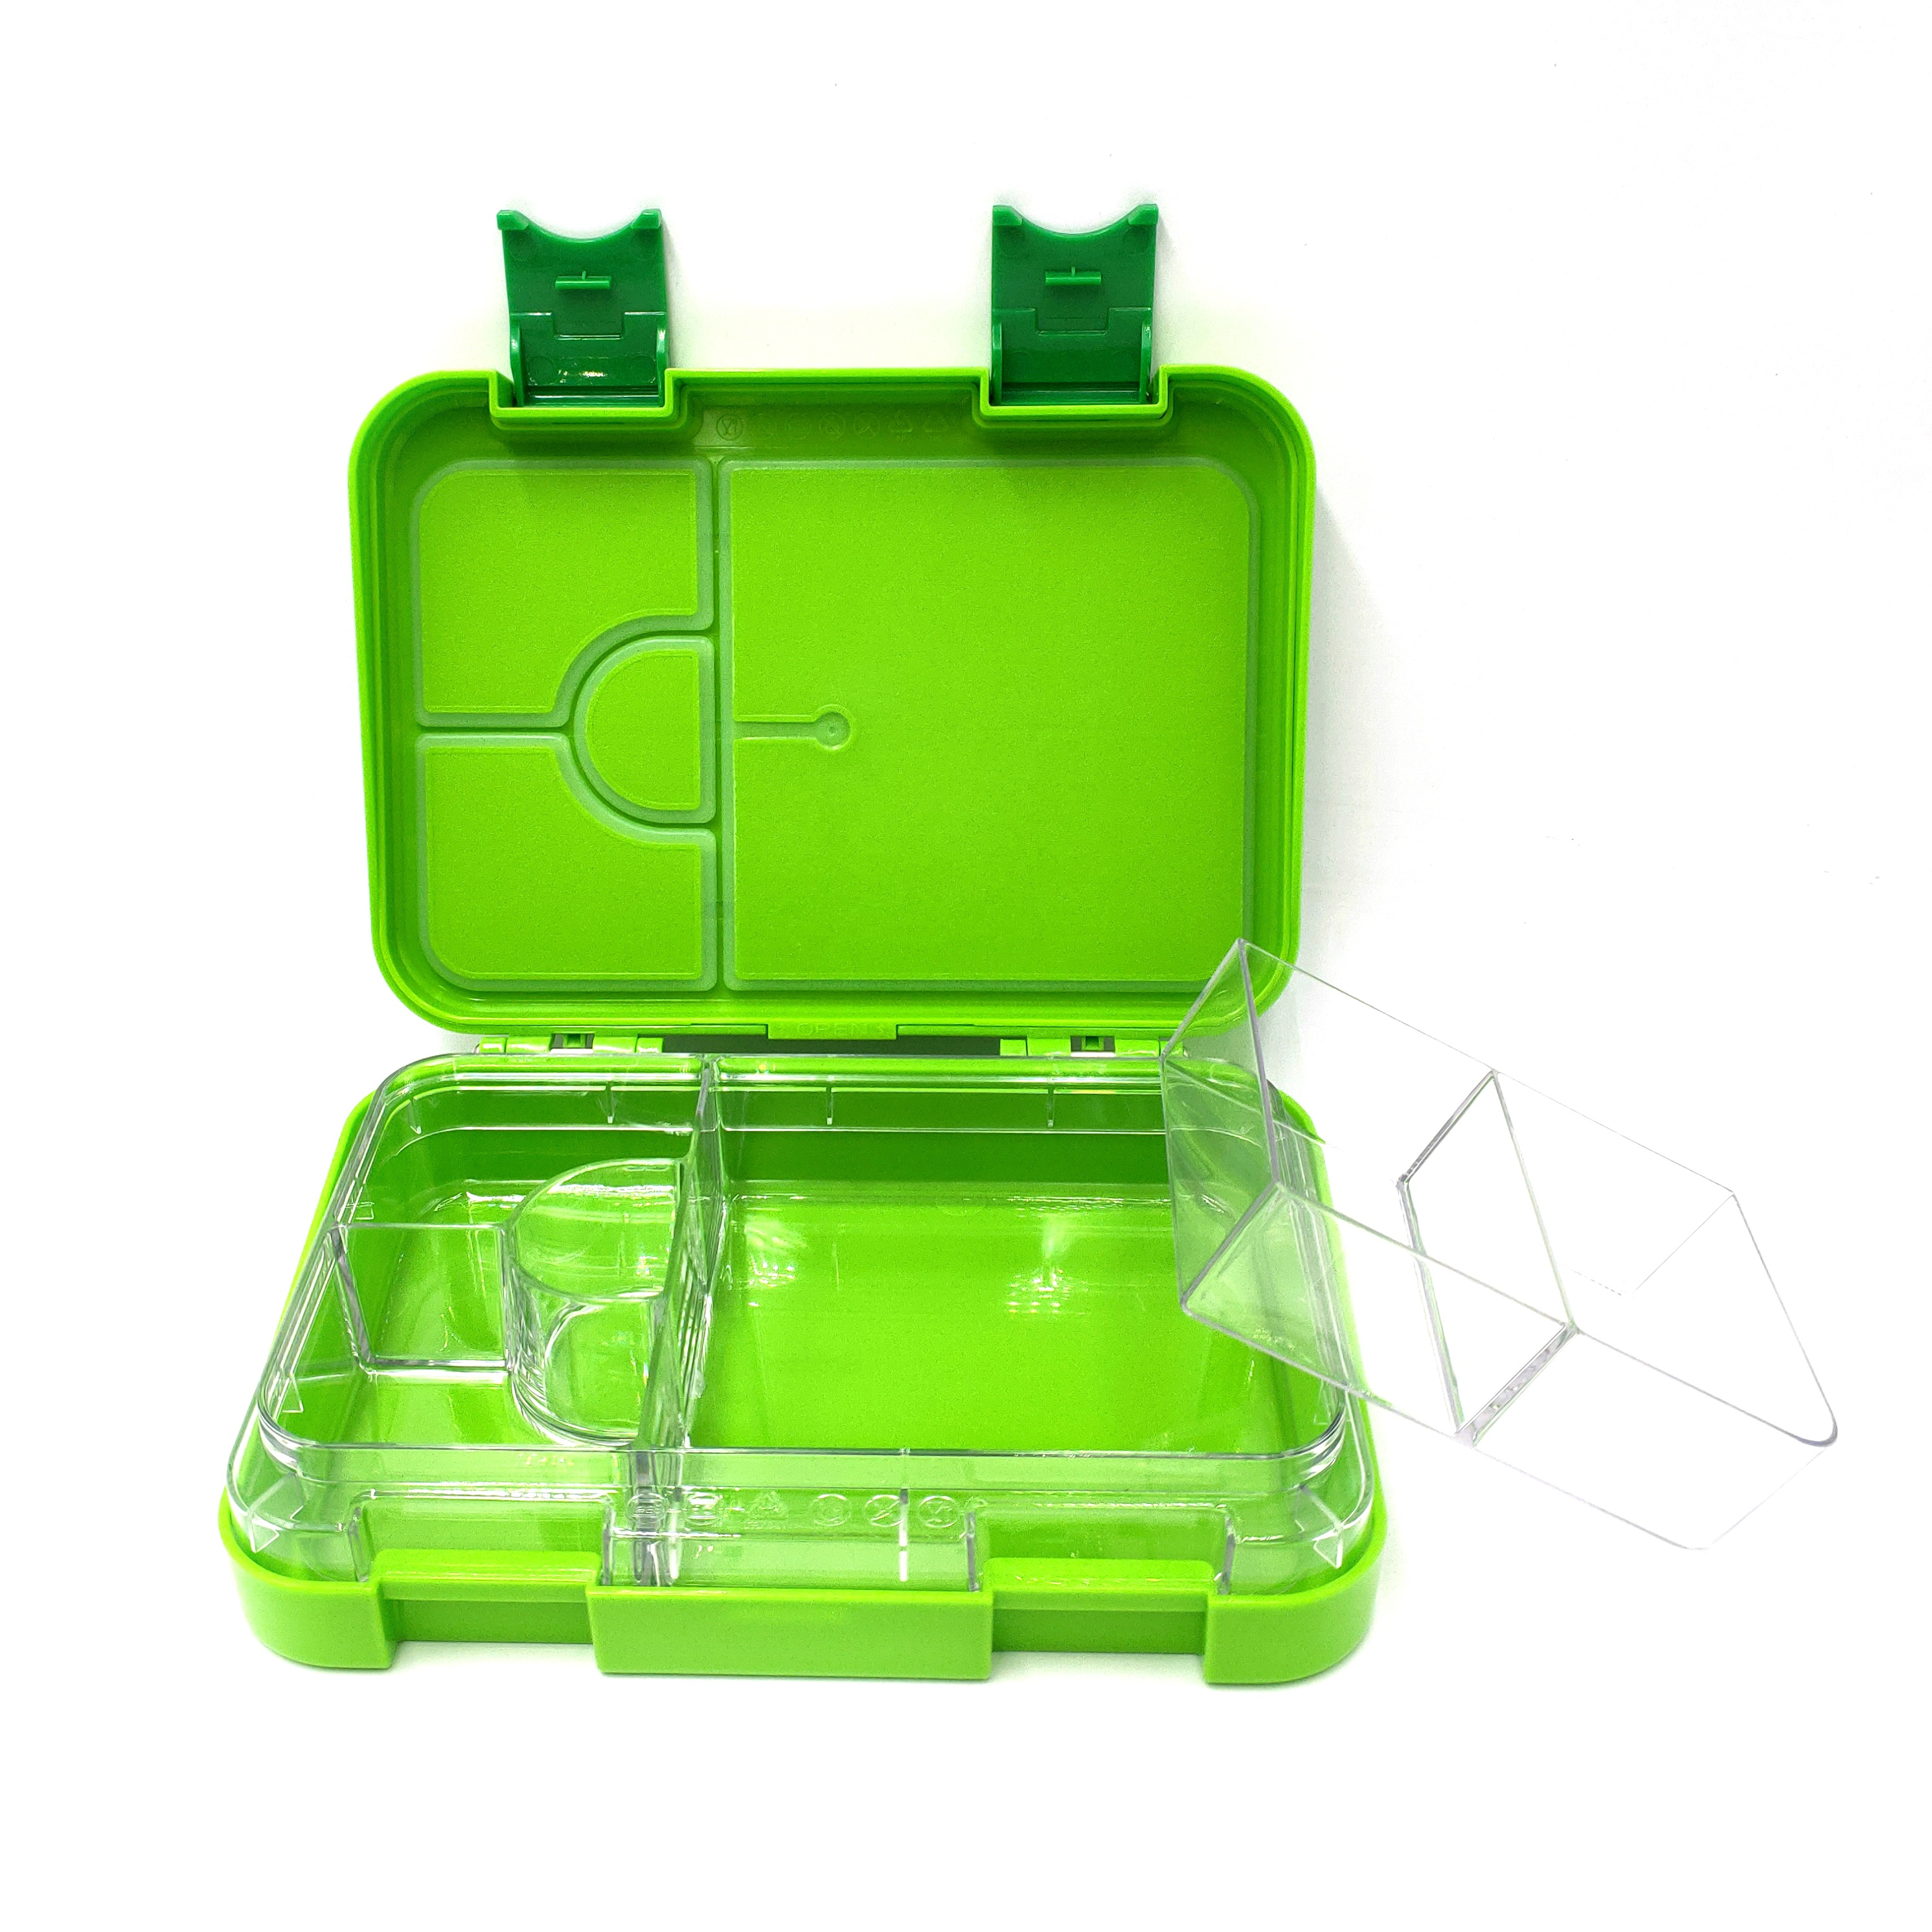 Kids Leakproof Reusable Lunch Box BPA Free Upgraded Toddler School Lunch Container Japanese Detachable Food Bento Box